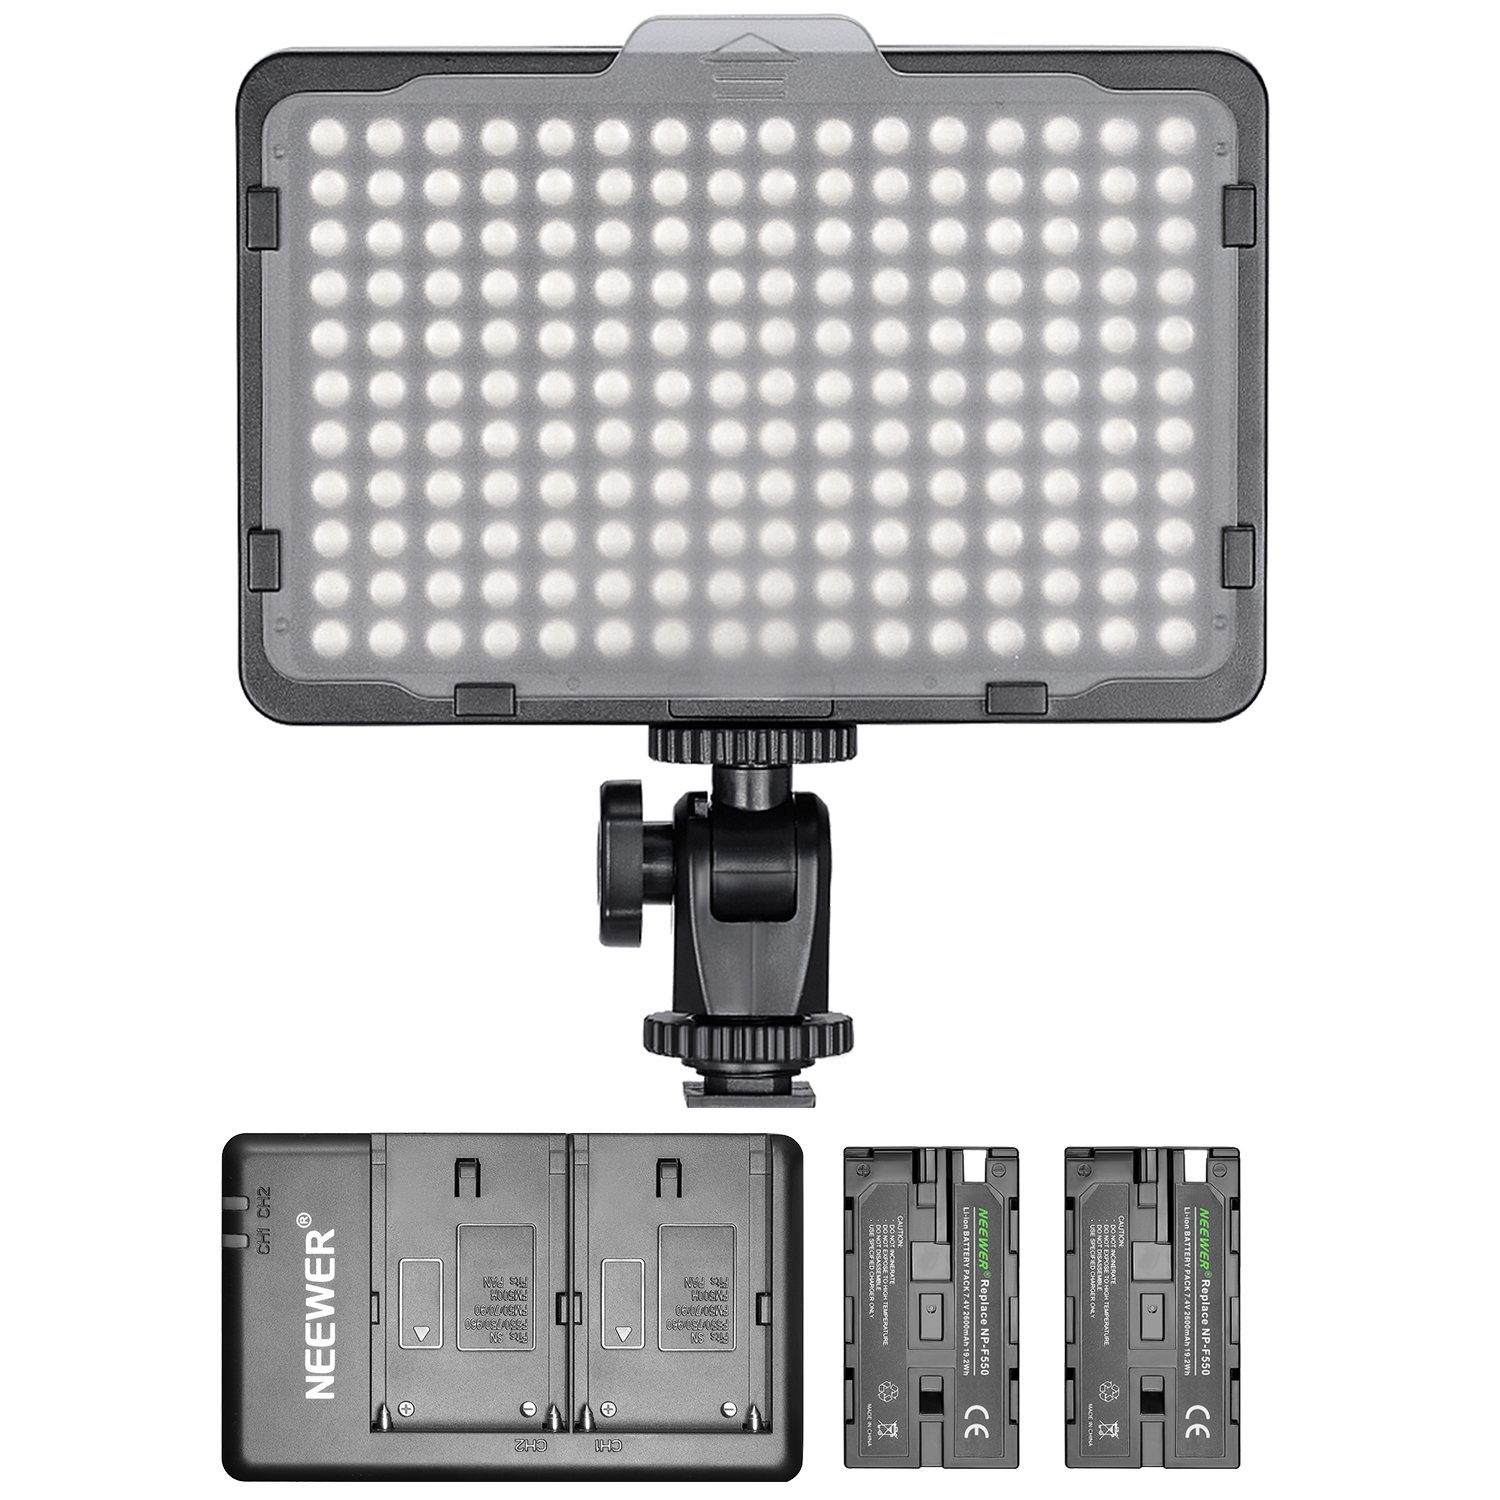 Neewer Dimmable 176 LED Video Light with 2-Pack 2600mAh Li-ion Battery and Dual USB Battery Charger Lighting Kit for Canon, Nikon and Other Digital SLR Cameras for Photo Studio Video Shooting by Neewer